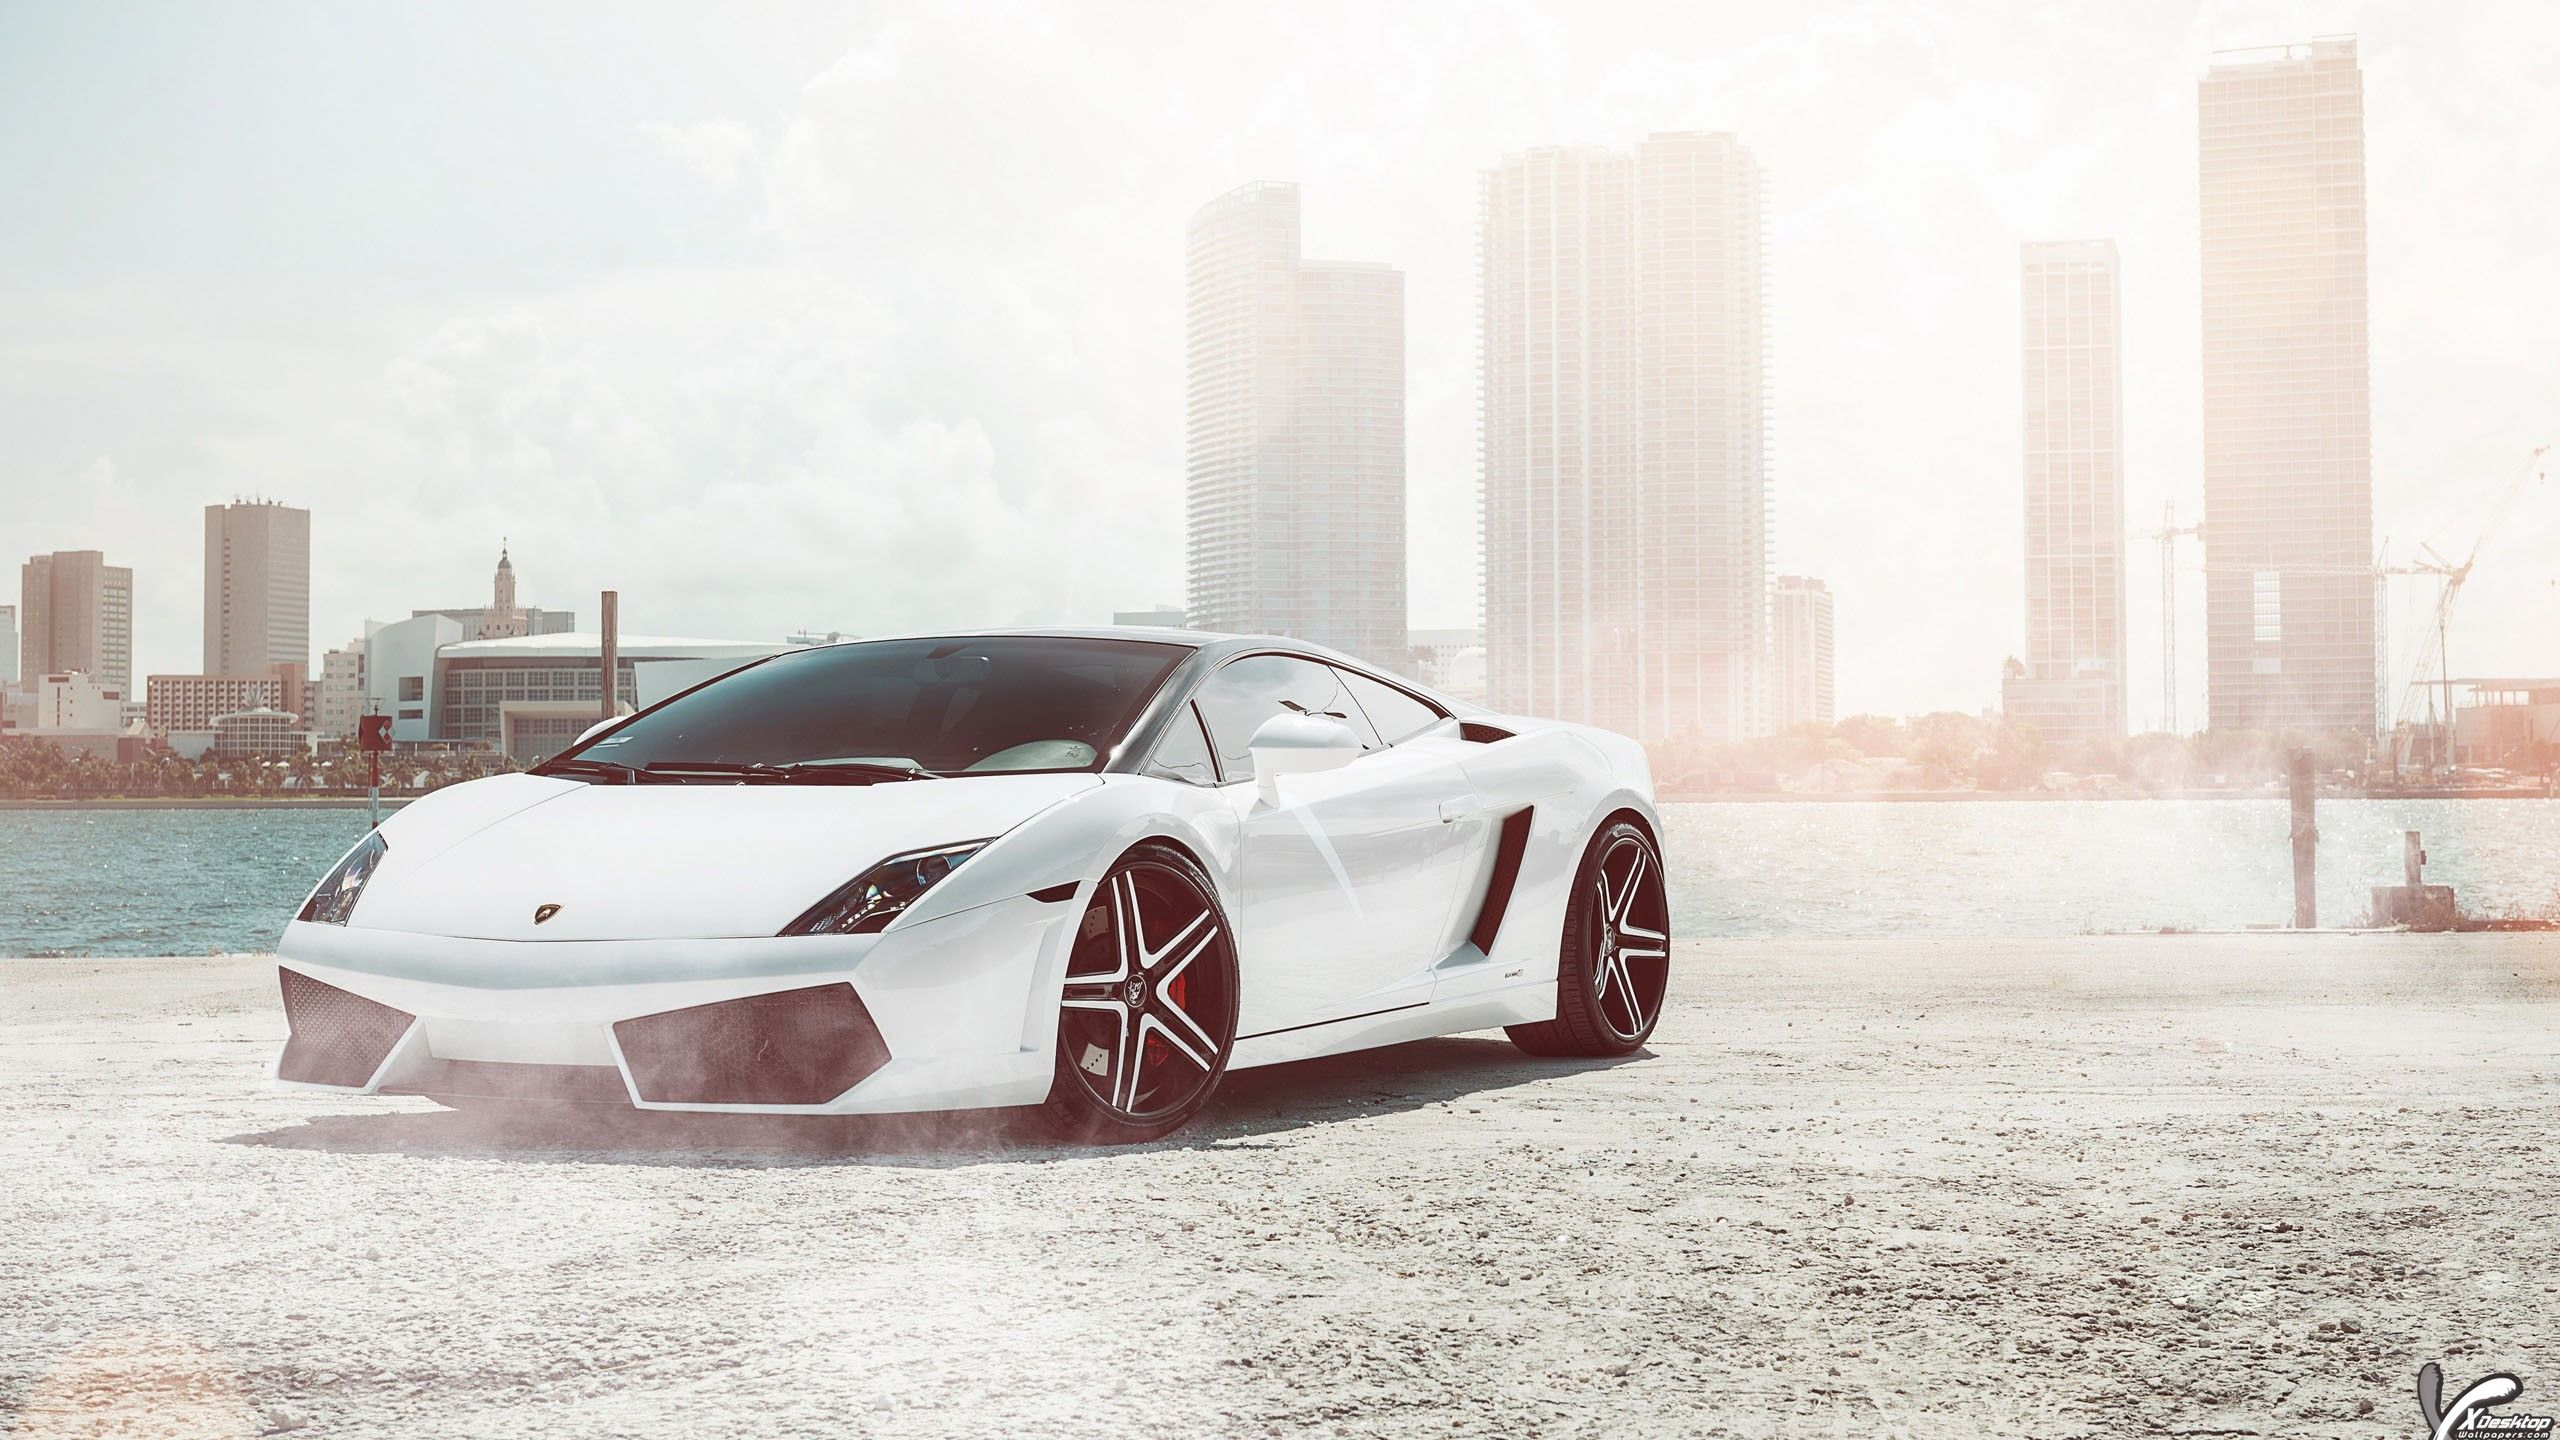 Lamborghini Gallardo Super Car In White Color Wallpaper